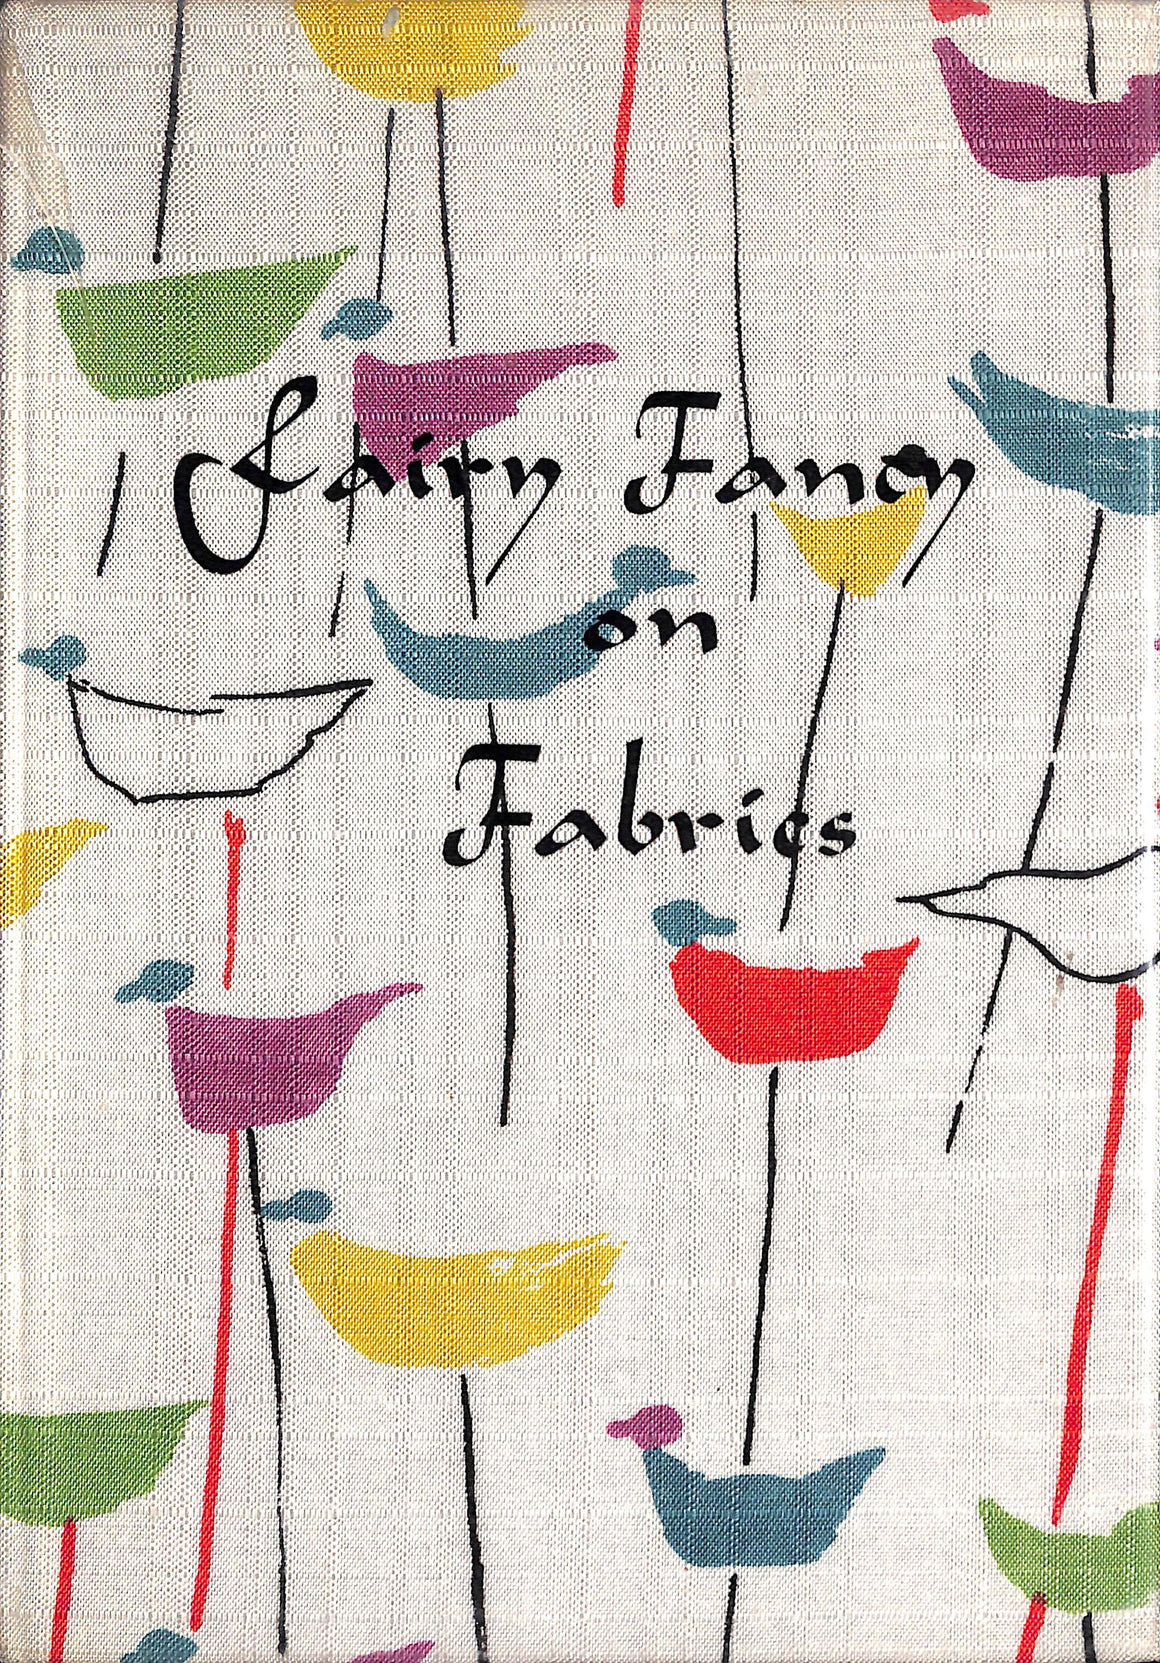 Fairy Fancy on Fabrics: The Wonderland of Calico Printing